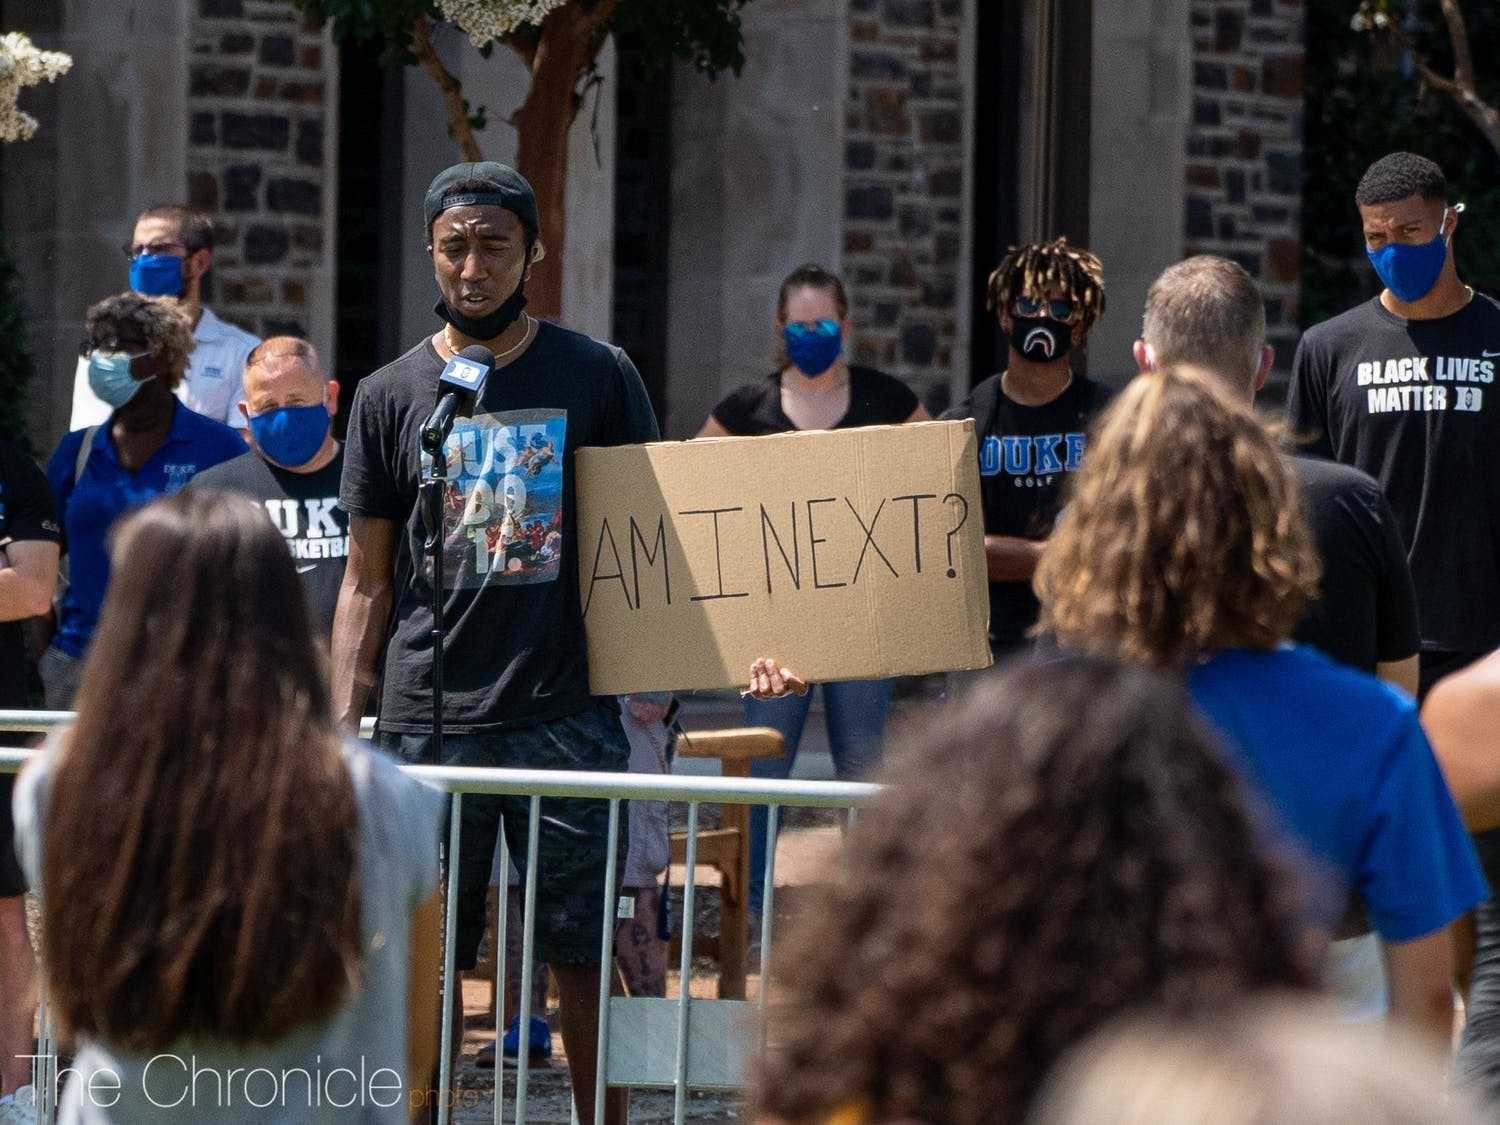 On Thursday, Aug. 27, 2020, Nolan Smith, men's basketball director of operations, organized a socially distanced peaceful protest for the Black Lives Matter movement at K-Ville. Speeches were given by coaches, students and other figures at Duke.  Photos by Henry Haggart.